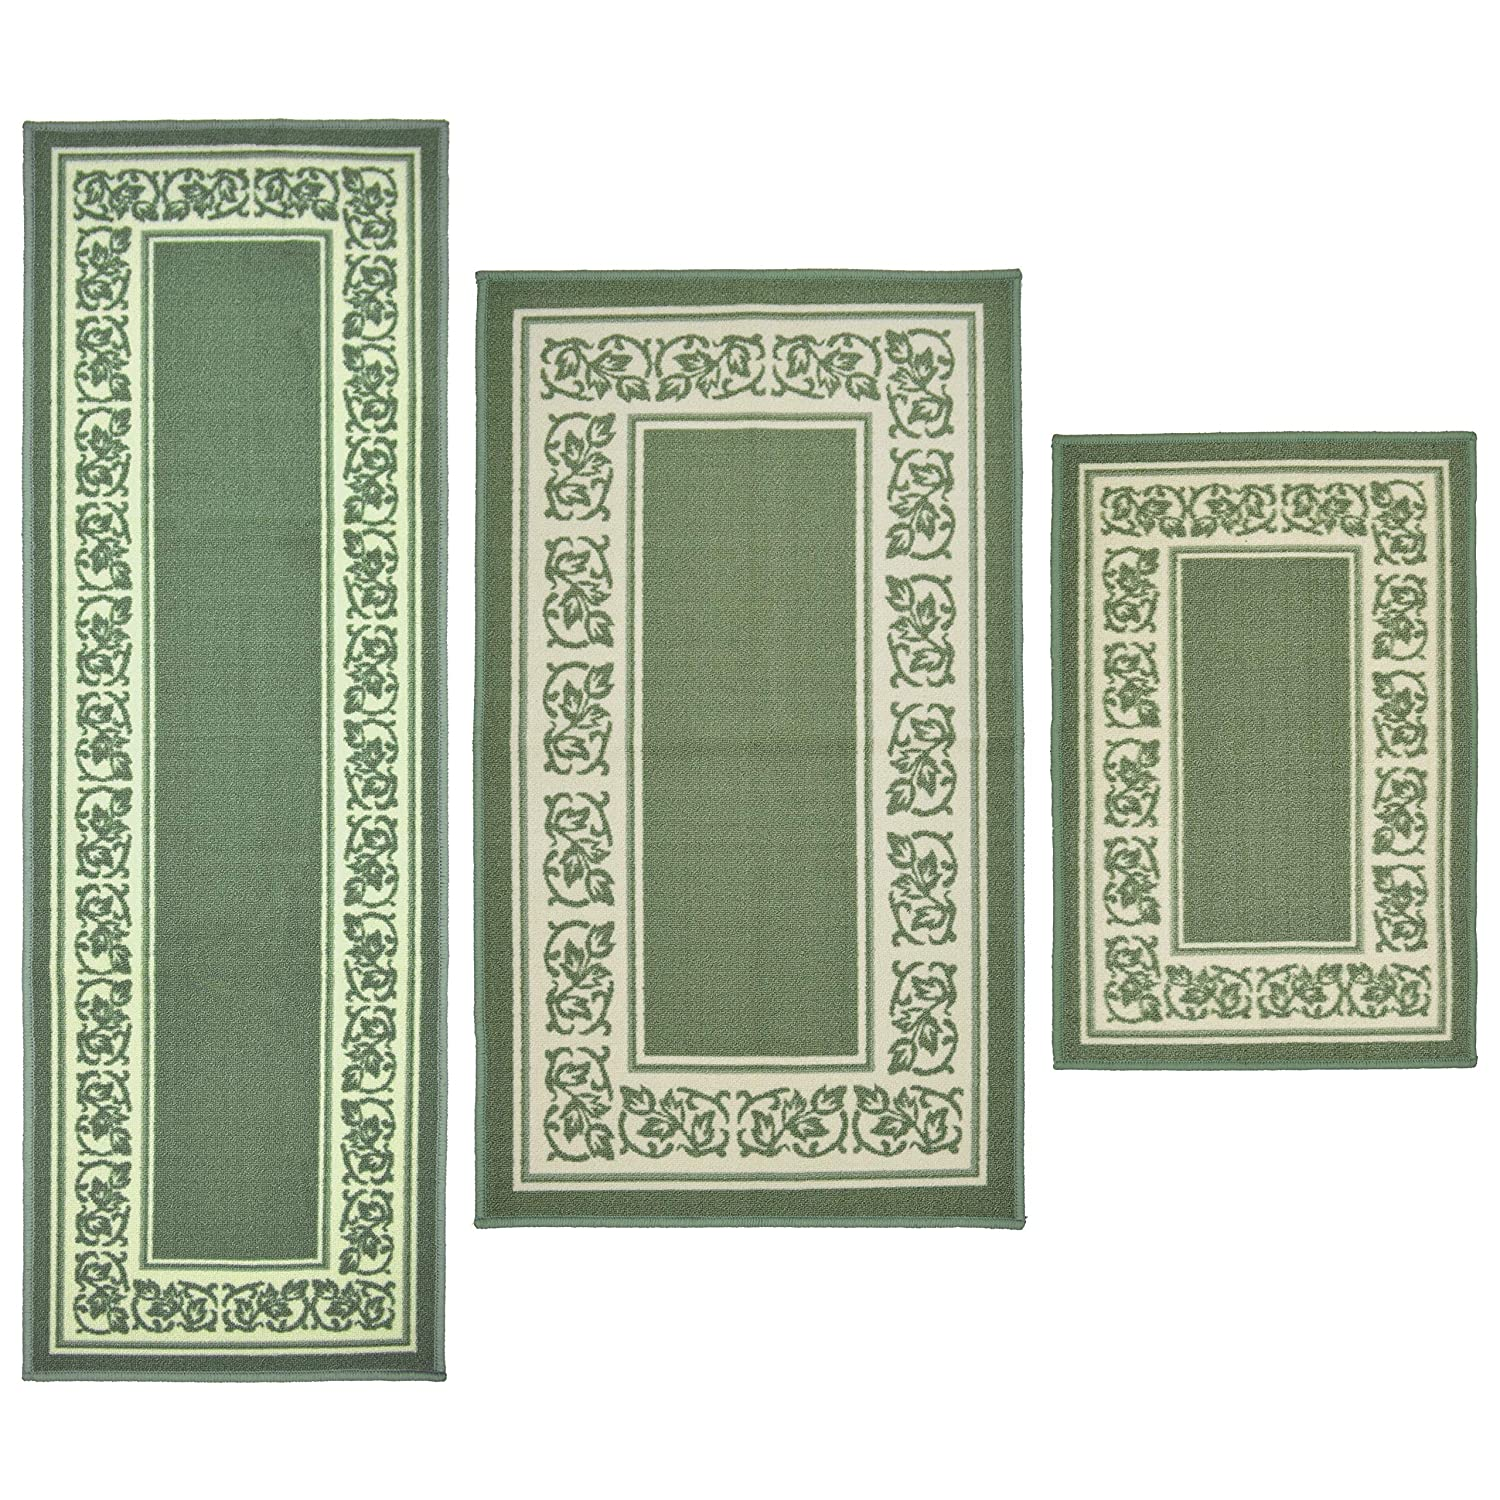 Olefin Synthetic Misc Sage Green 3pc Kitchen Rug Set Boho Chic Floral Non Slip Anti Room Entryway Accent Decoration Rugs Kitchen Table Linens Home Kitchen Westmead Is Edu Ph